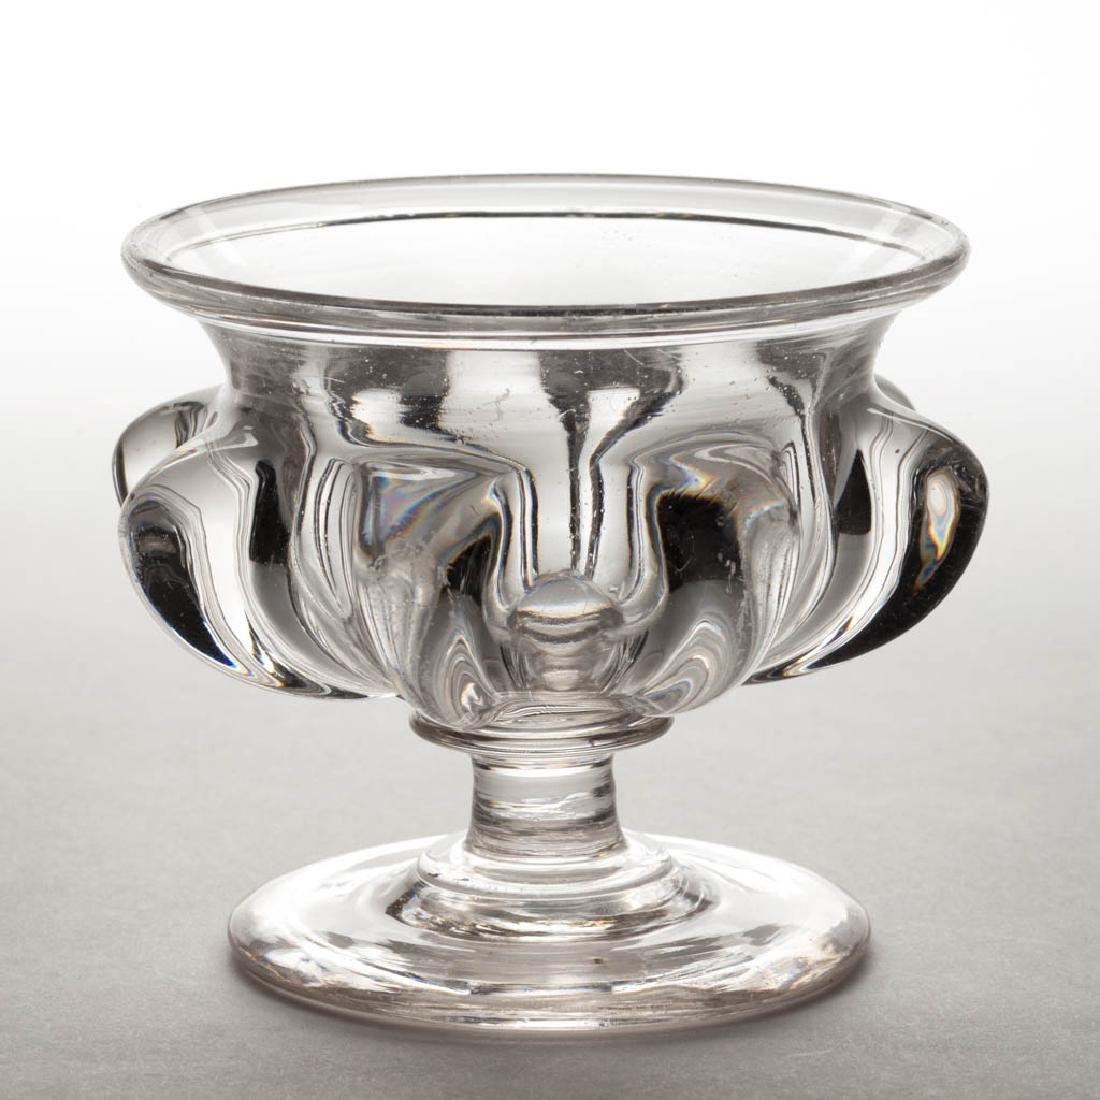 PILLAR-MOLDED FOOTED OPEN SUGAR BOWL